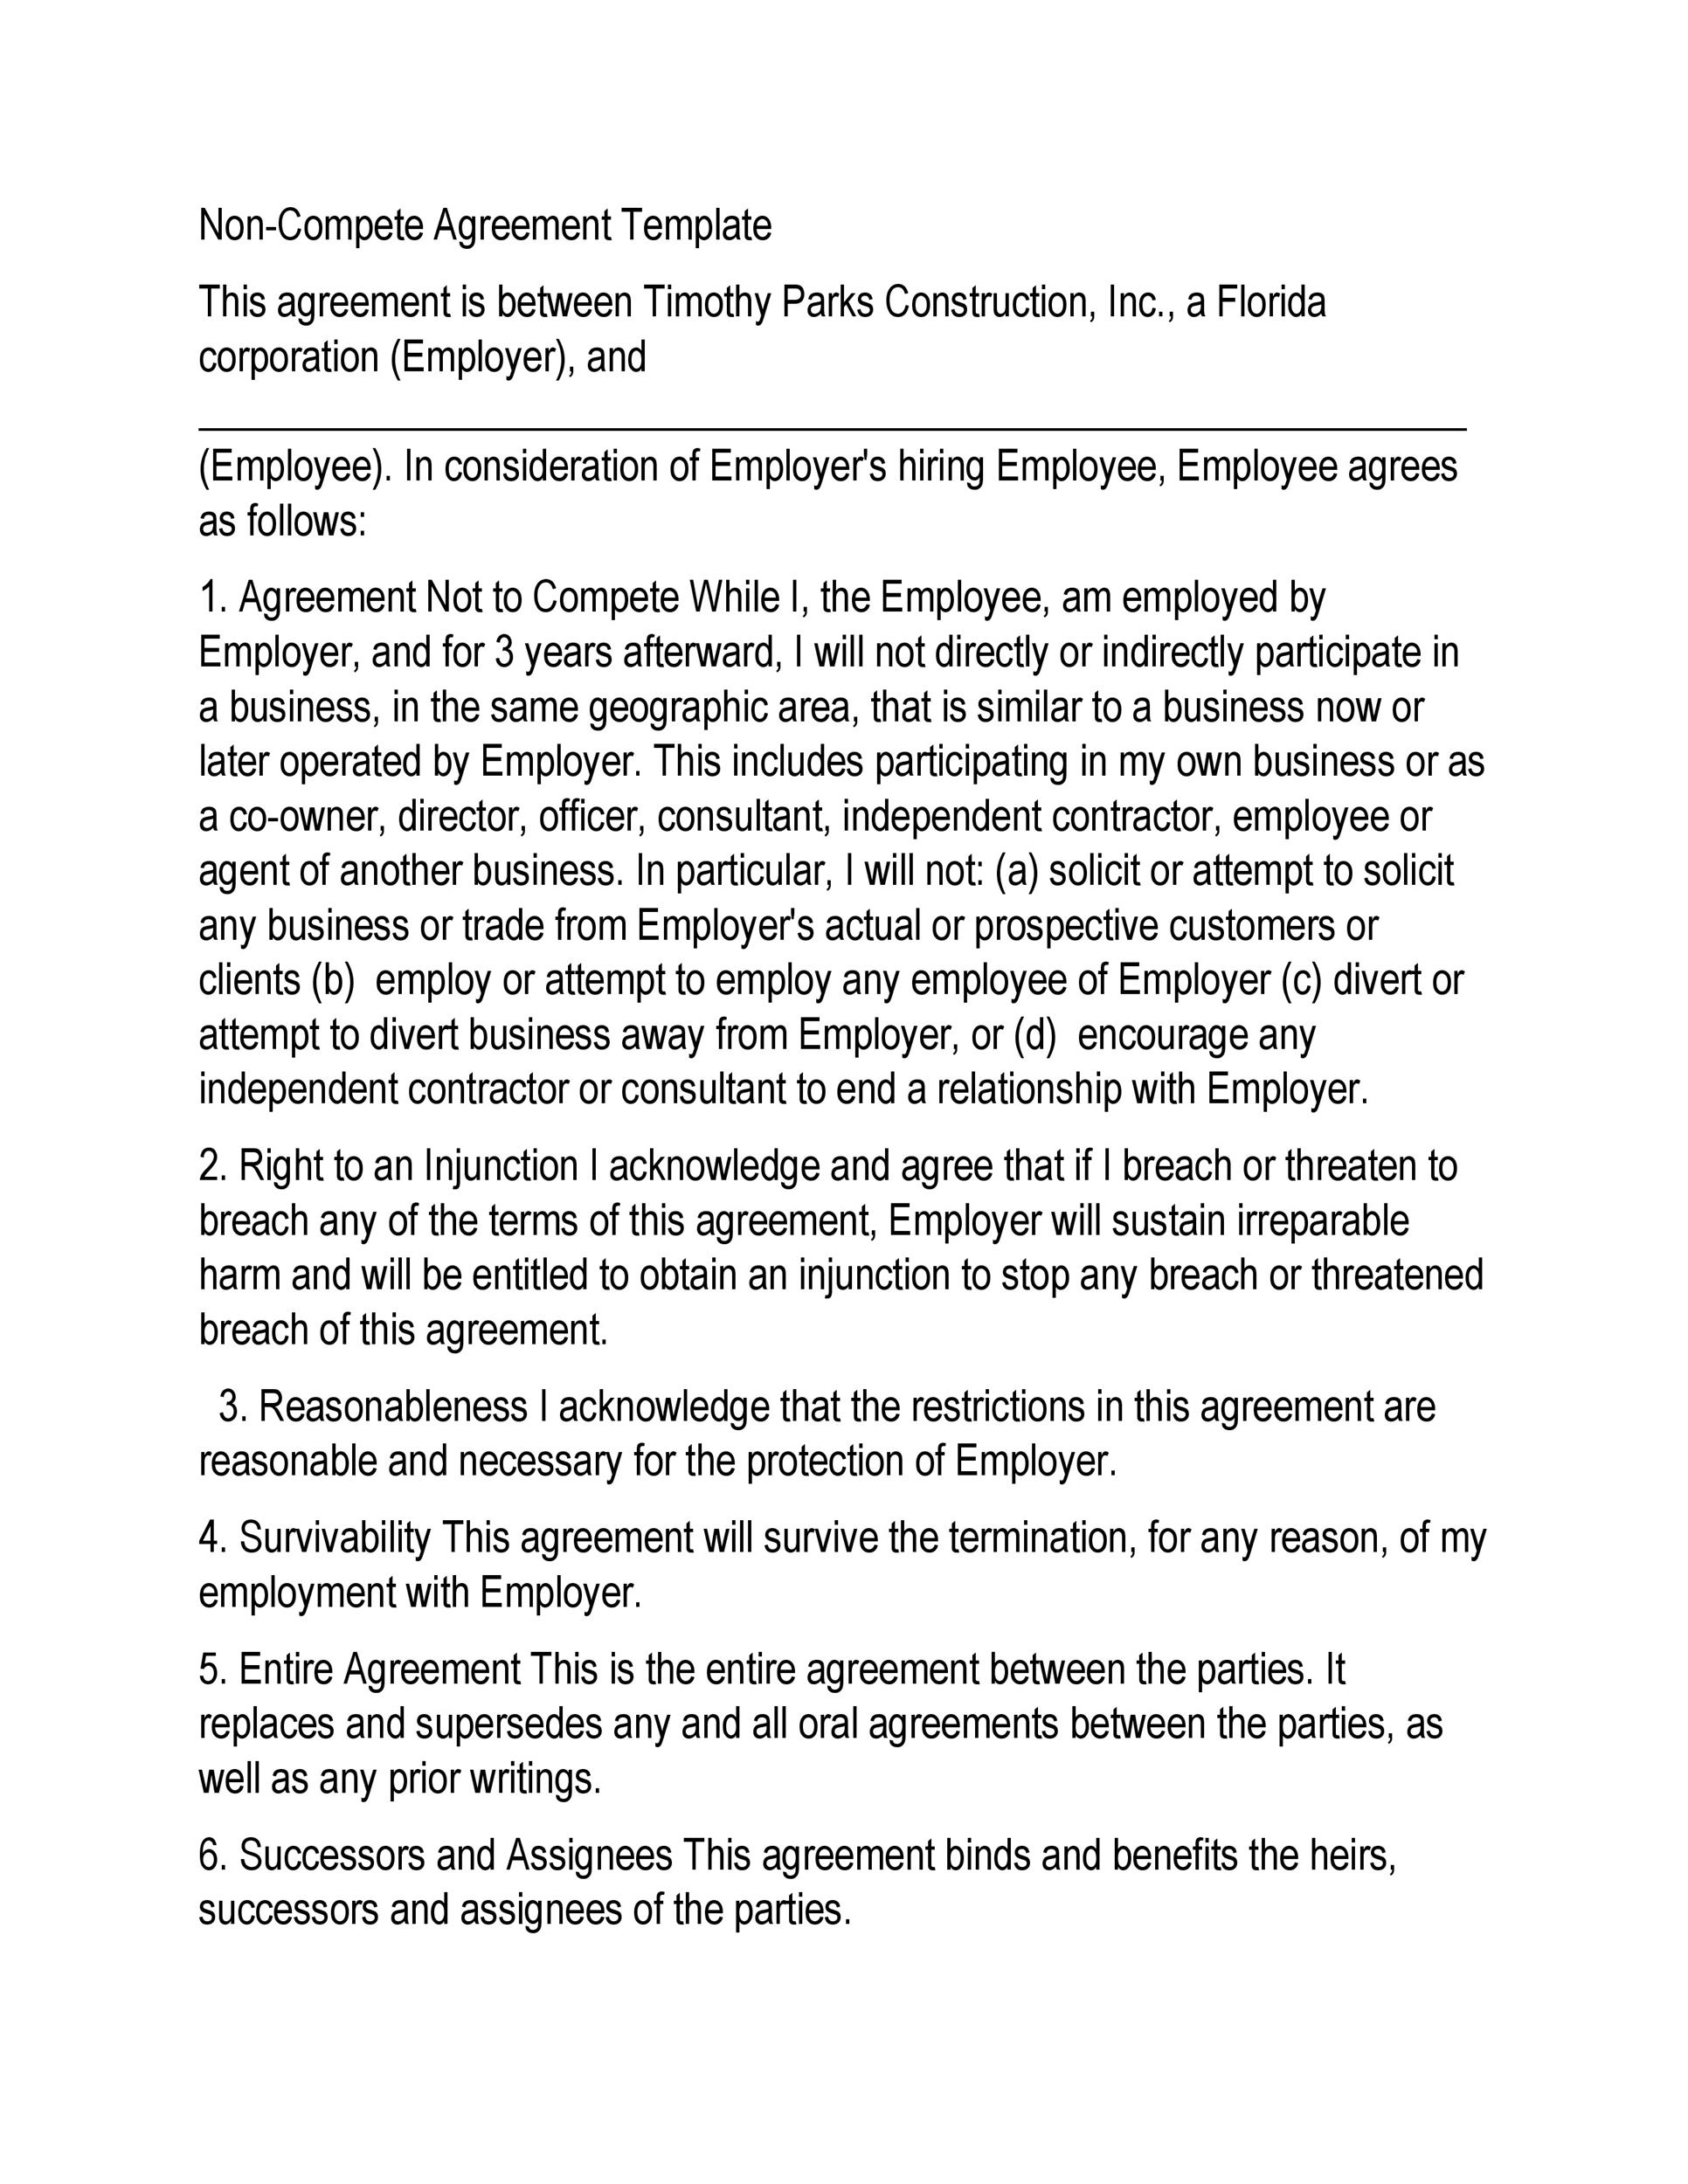 Free Non-Compete Agreement Template 01